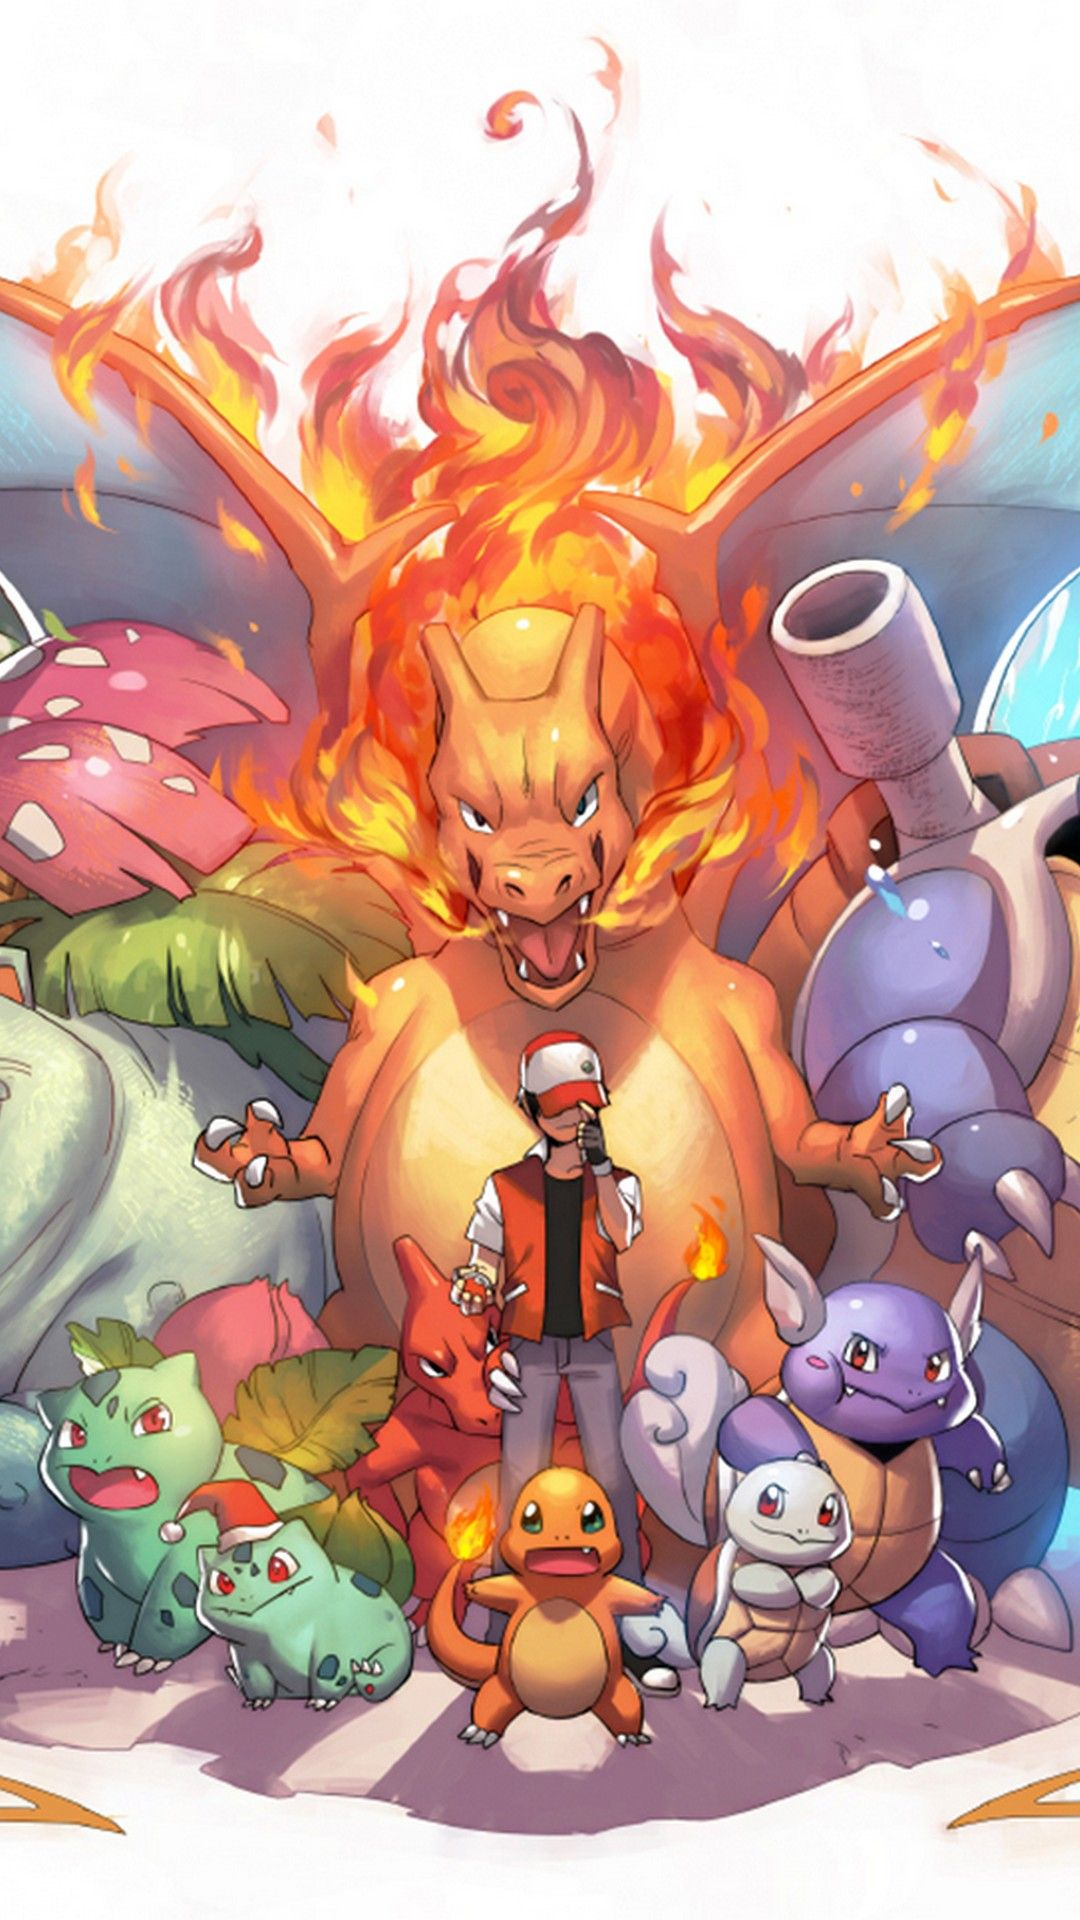 Pokemon Wallpaper Hd To Download Android Wallpaper Hd